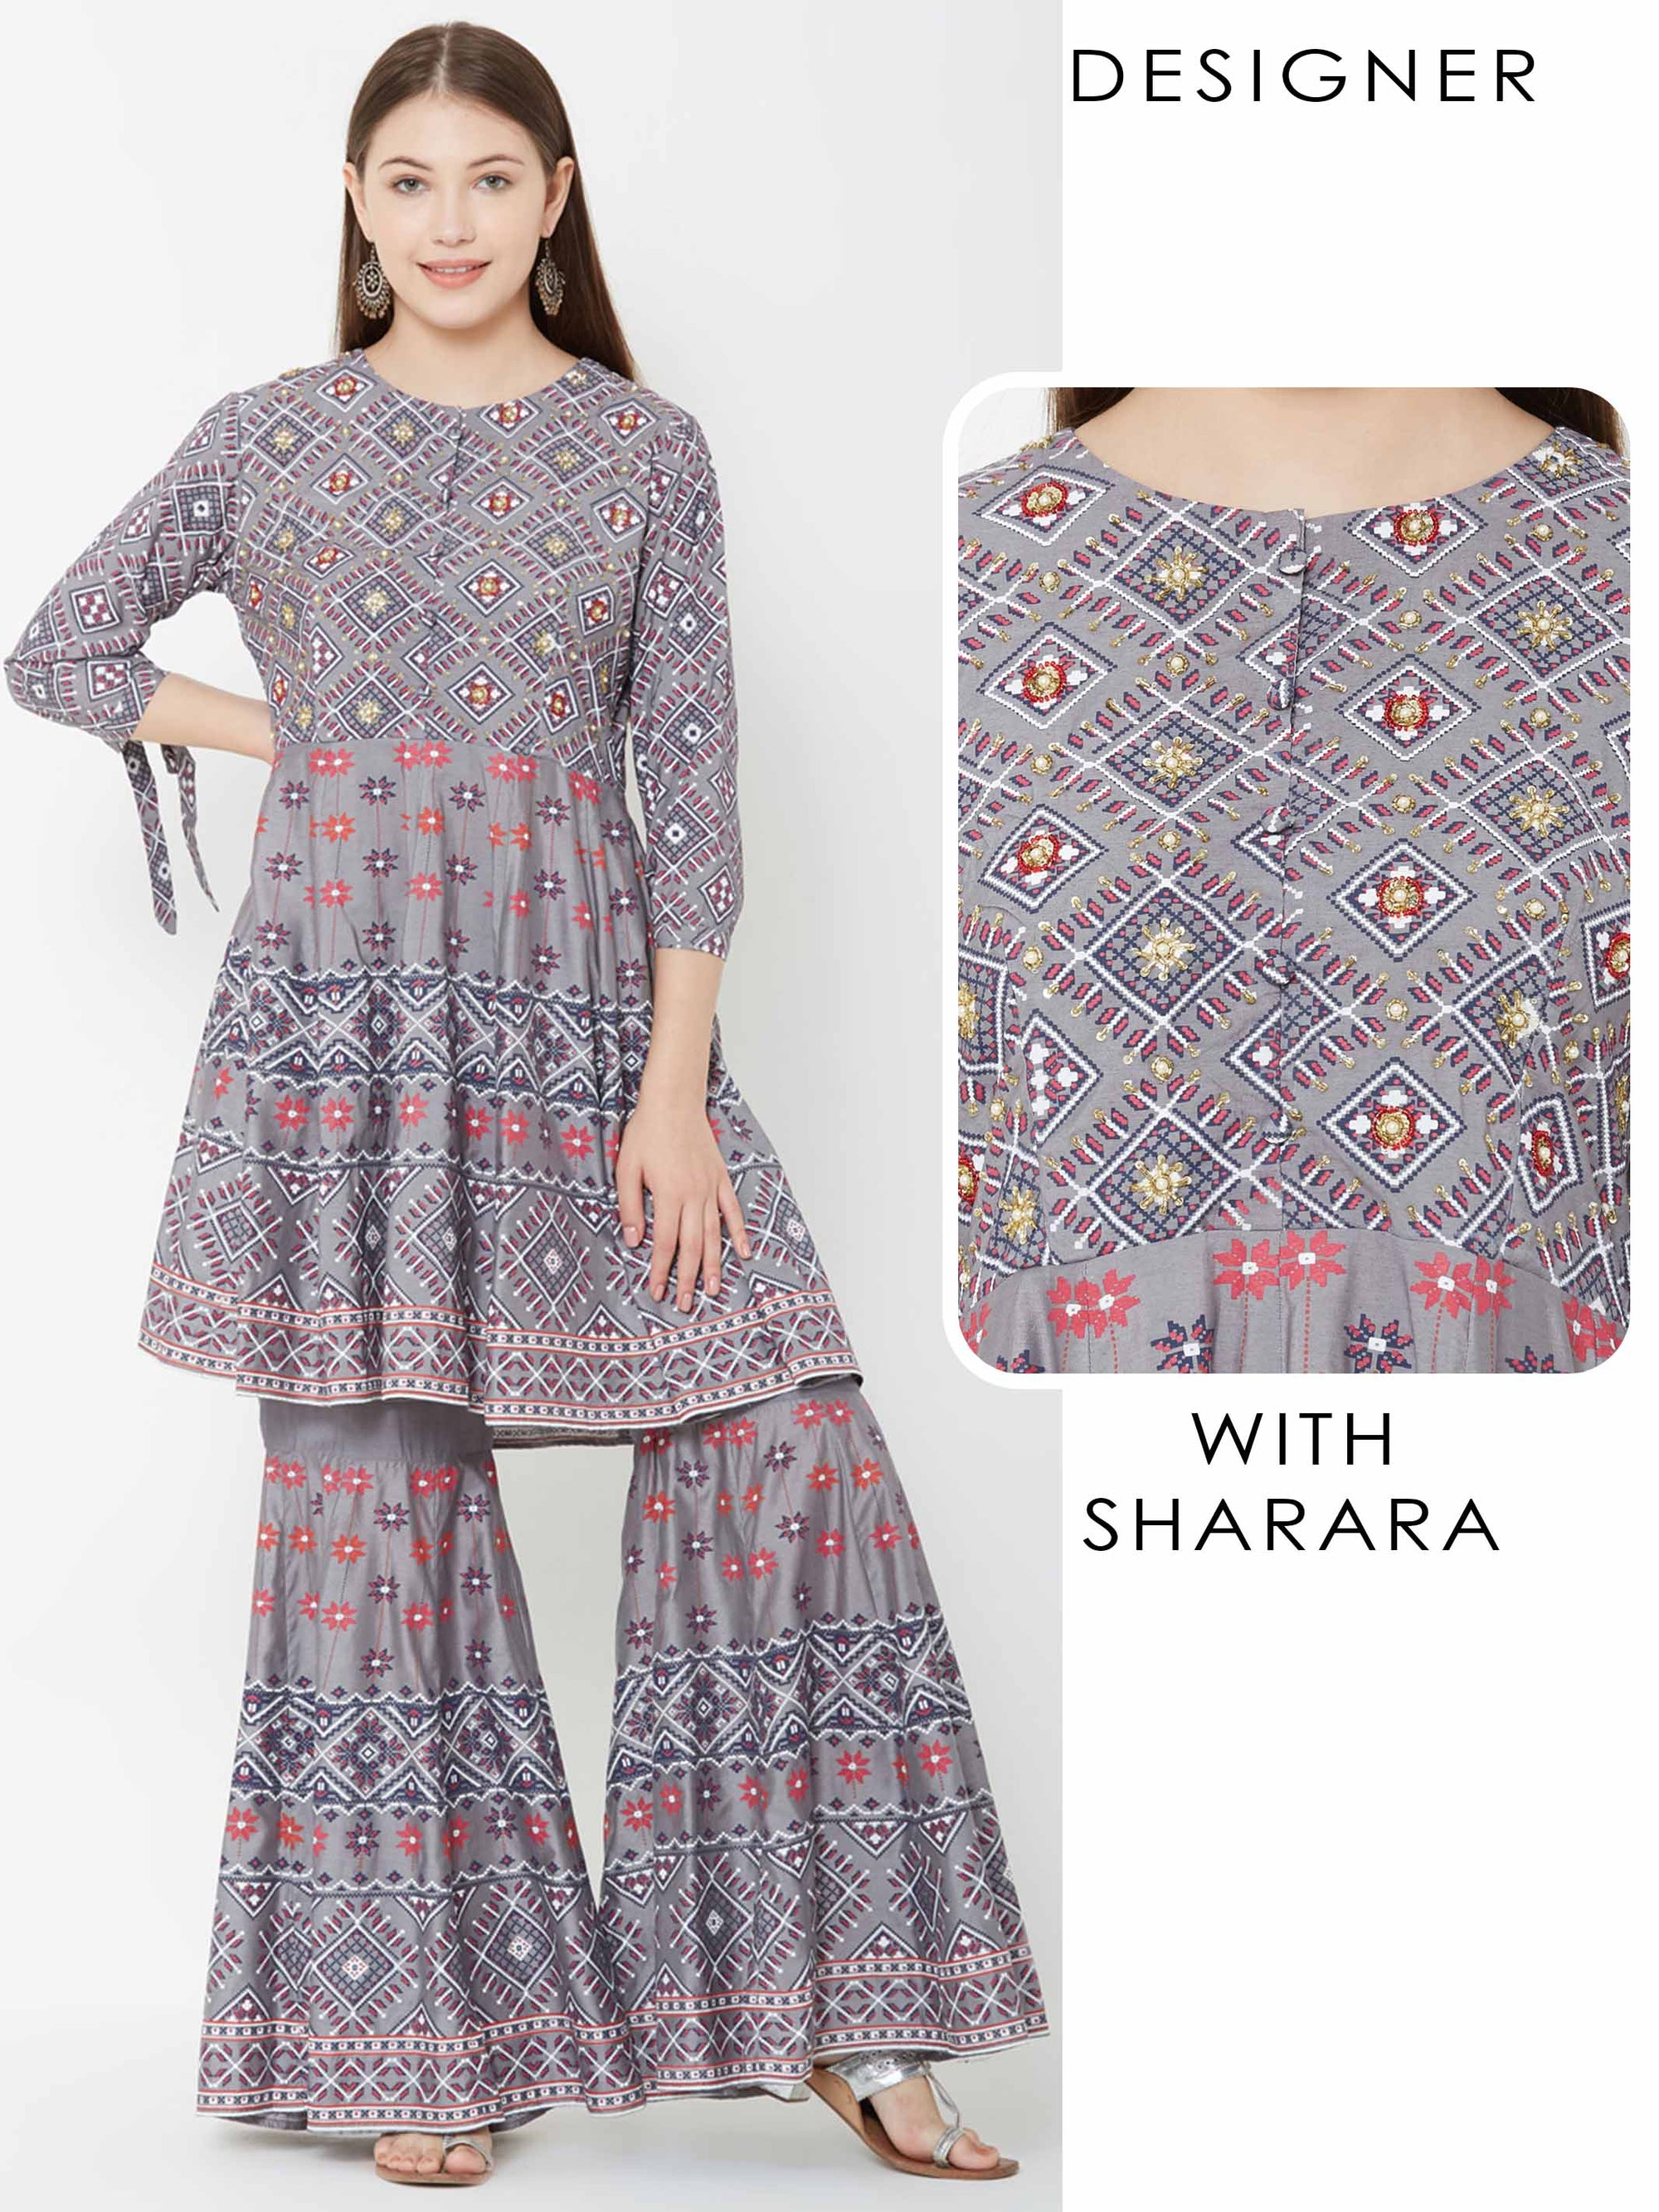 Cutdana & Beads Embellished Kurta with Floral Sharara – Grey